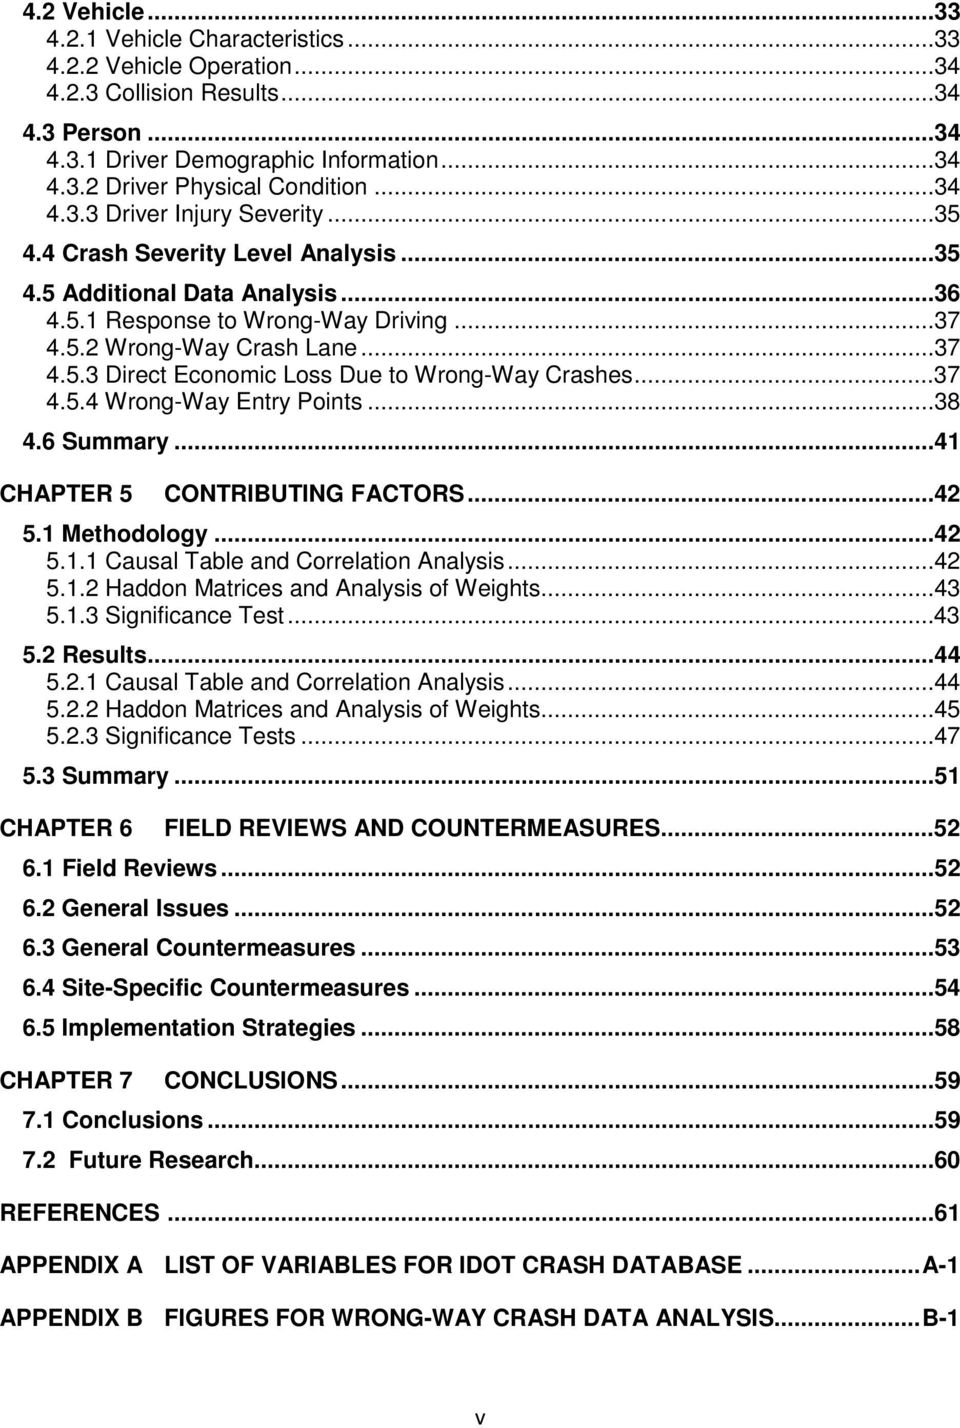 ..37 4.5.4 Wrong-Way Entry Points...38 4.6 Summary...41 CHAPTER 5 CONTRIBUTING FACTORS...42 5.1 Methodology...42 5.1.1 Causal Table and Correlation Analysis...42 5.1.2 Haddon Matrices and Analysis of Weights.